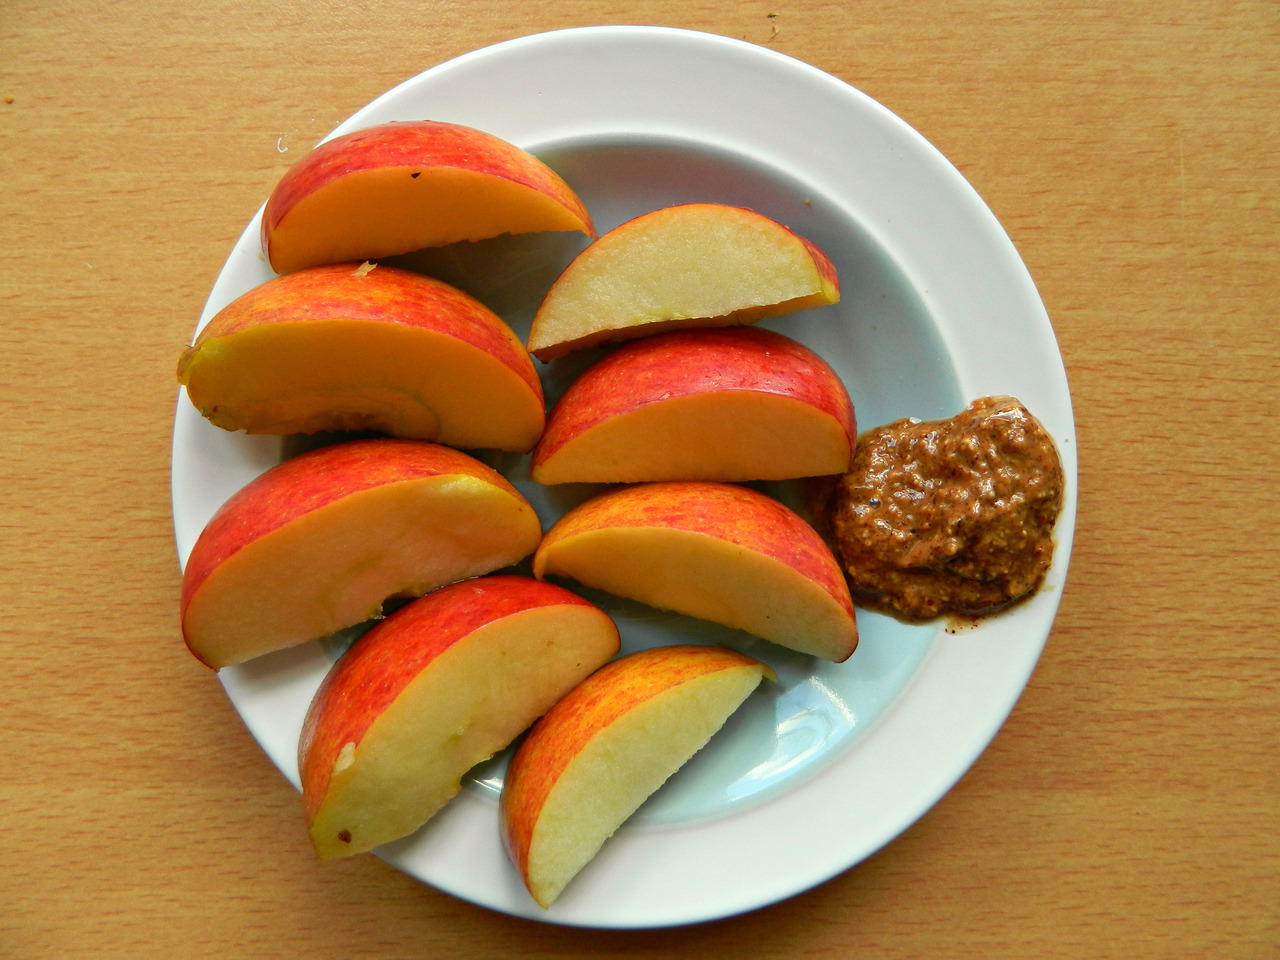 Braeburn apple slices with almond butter. I know, I know… that looks like a tiny amount of almond butter. Occasionally fingers accidentally fall in the almond butter and you have to lick it off. Then this process repeats. Until you realize now there's hardly any left for your apple. These things just happen sometimes. You know how it is.